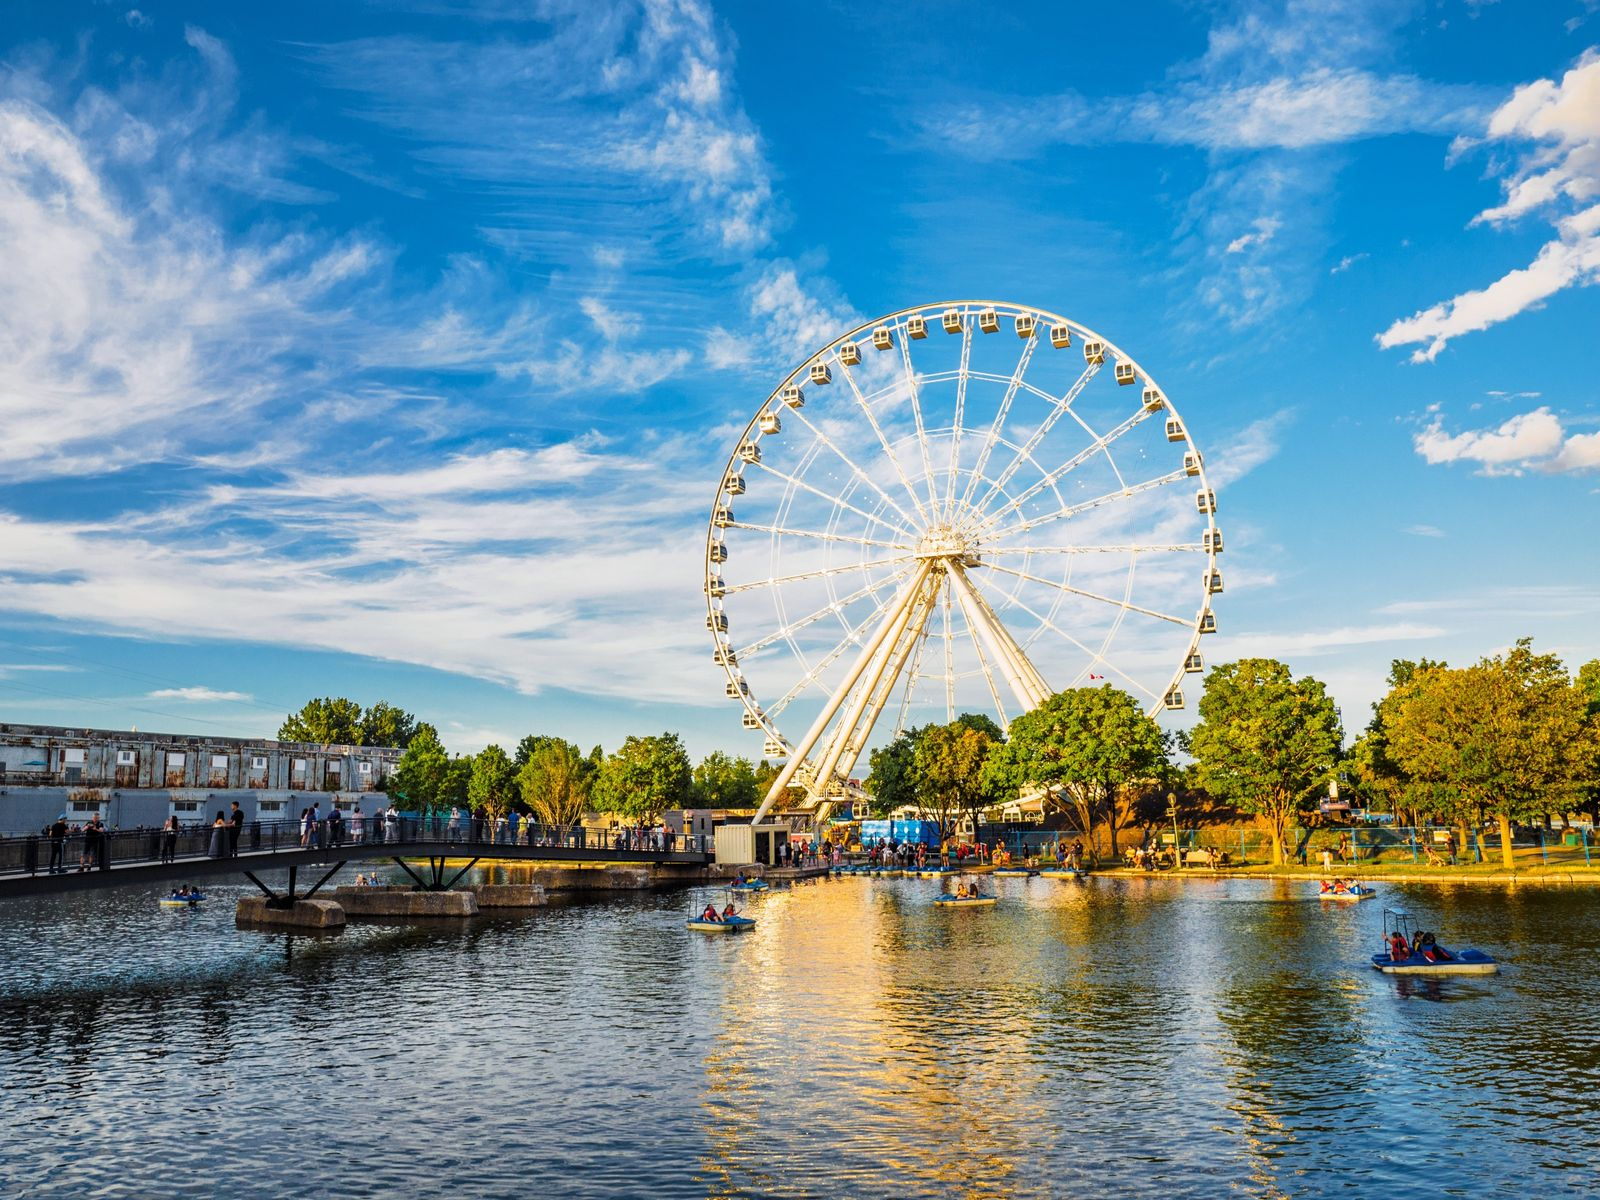 City waterfront park in Old Montreal with view of La Grande Roue de Montreal (Observation Wheel).